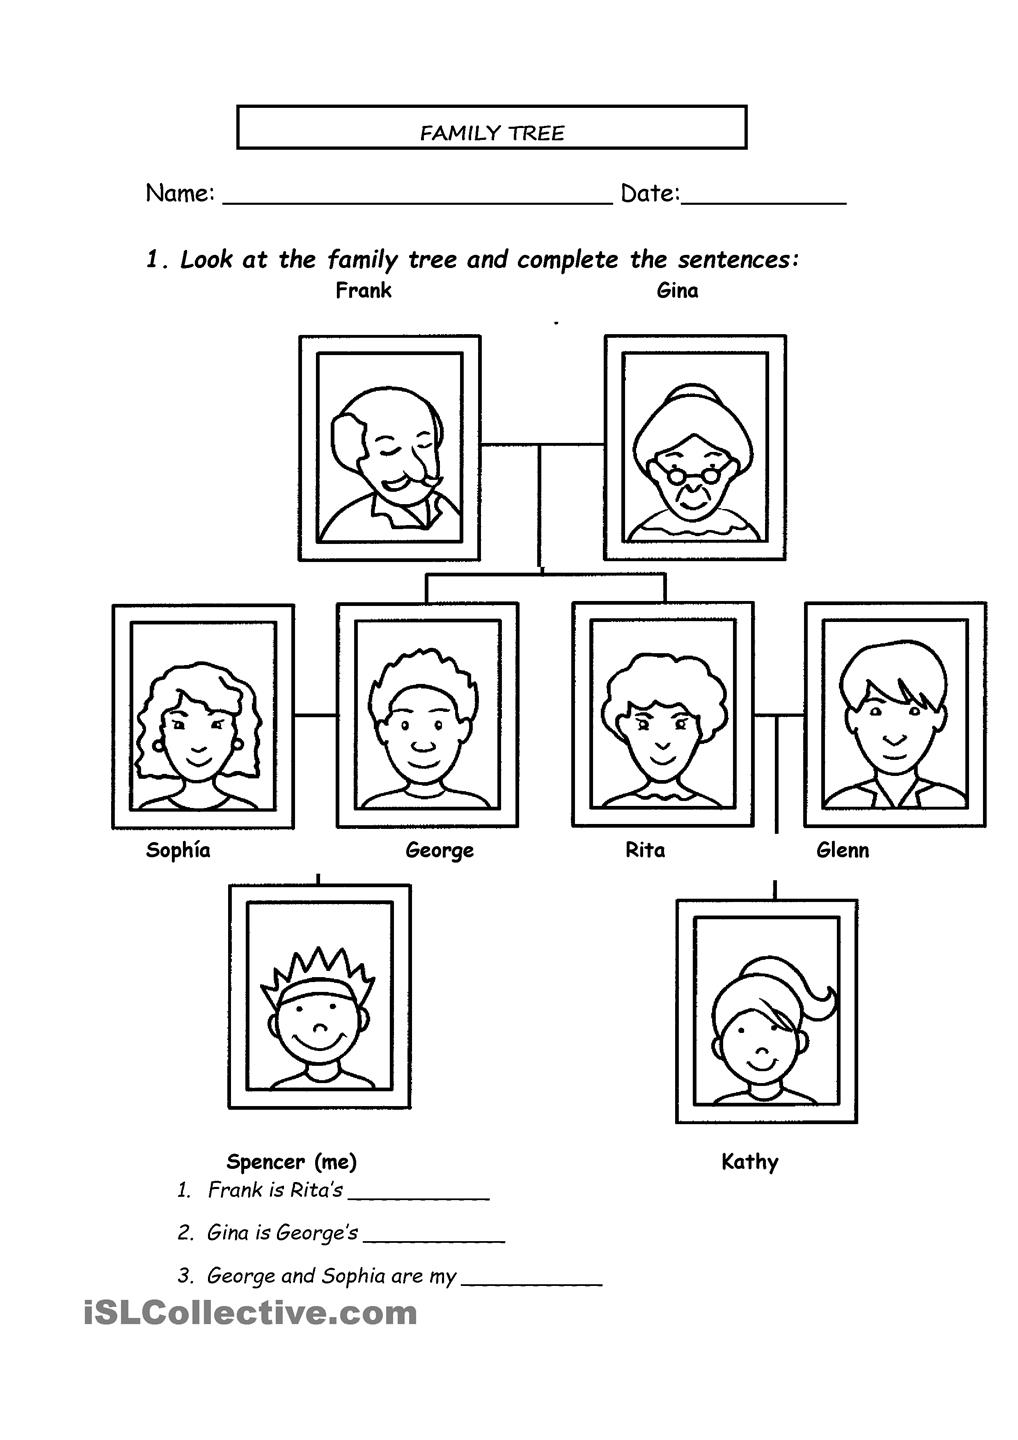 26 Images Of Esl Family Tree Template – Worksheets Samples